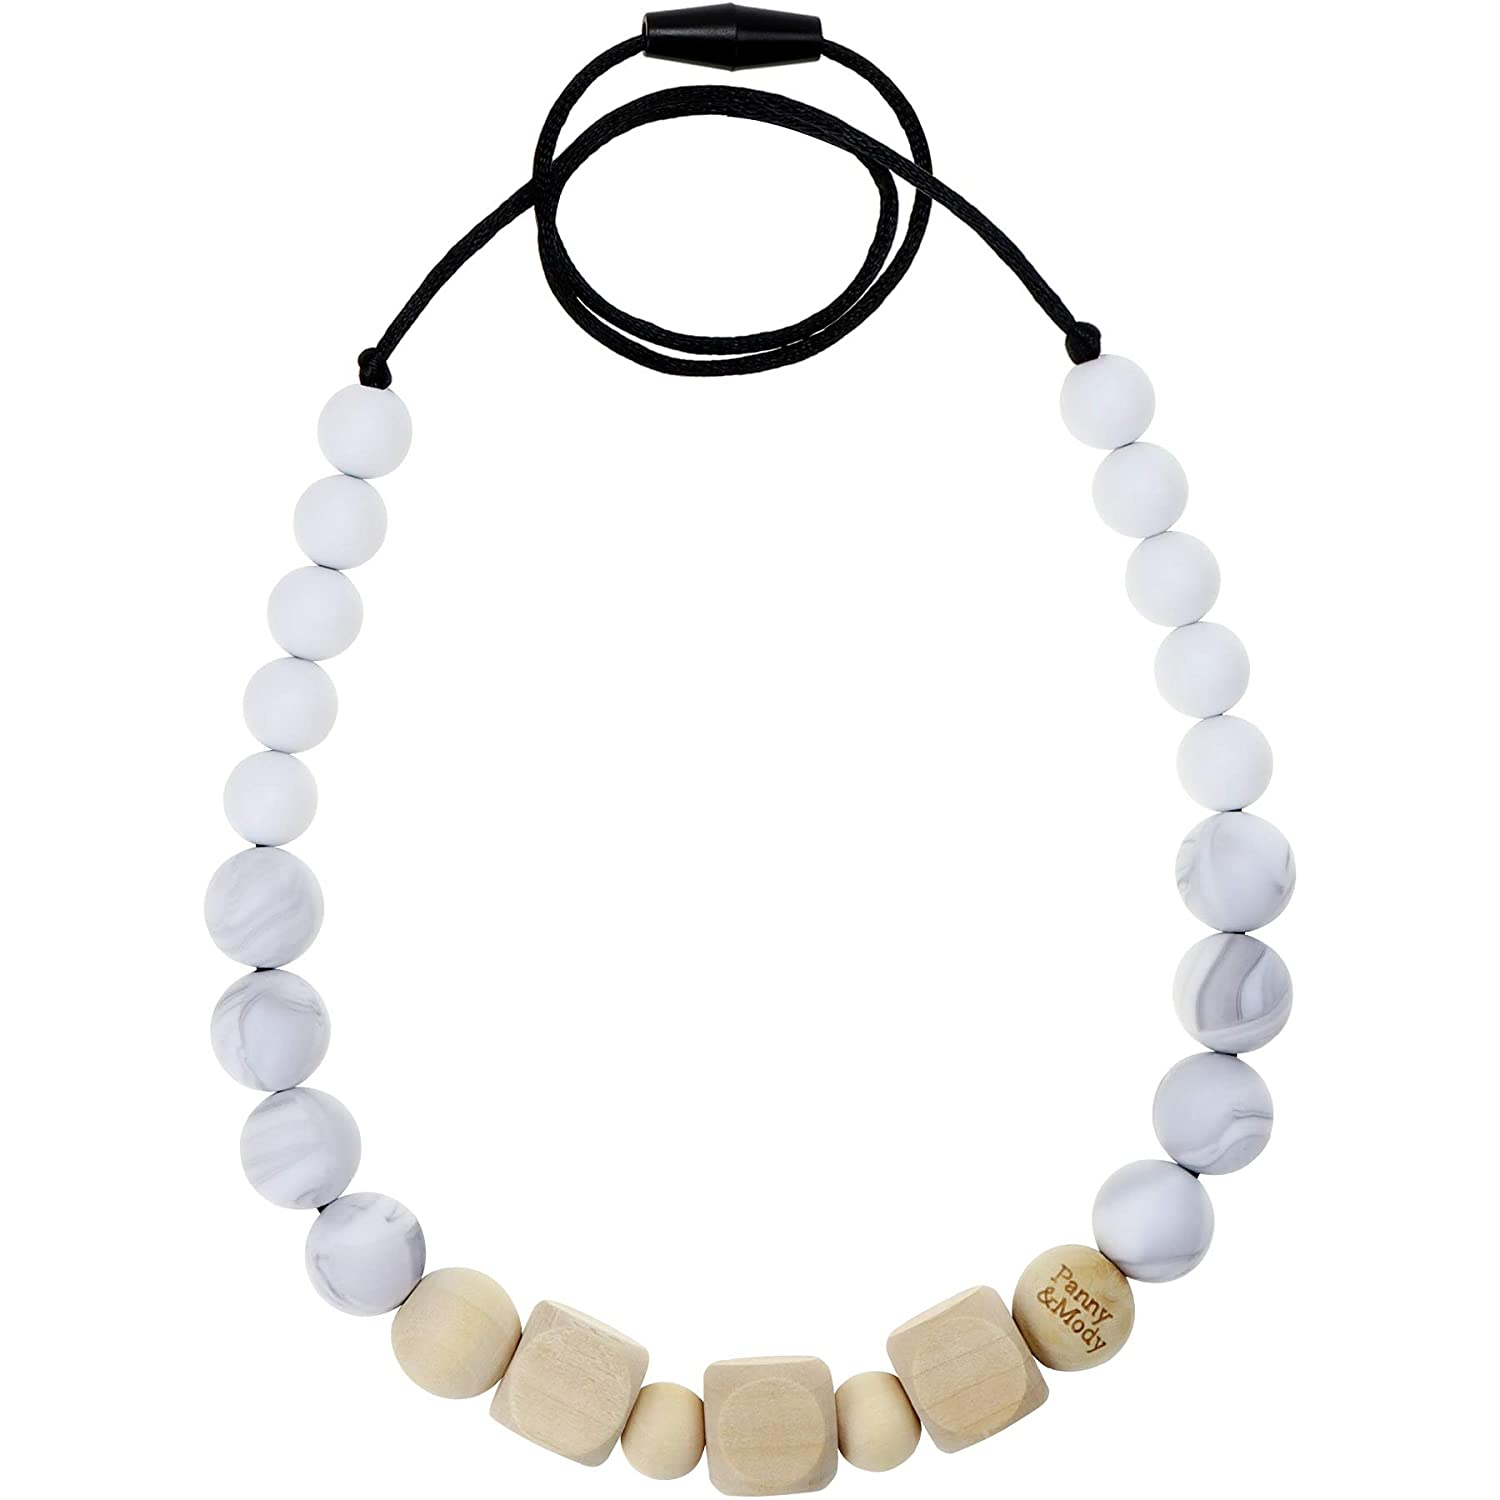 Baby Teething Necklace for Mom to Wear, Panny & Mody Nursing Necklace with Chewable Silicone and Wooden Beads for Teething Relief(Marble)